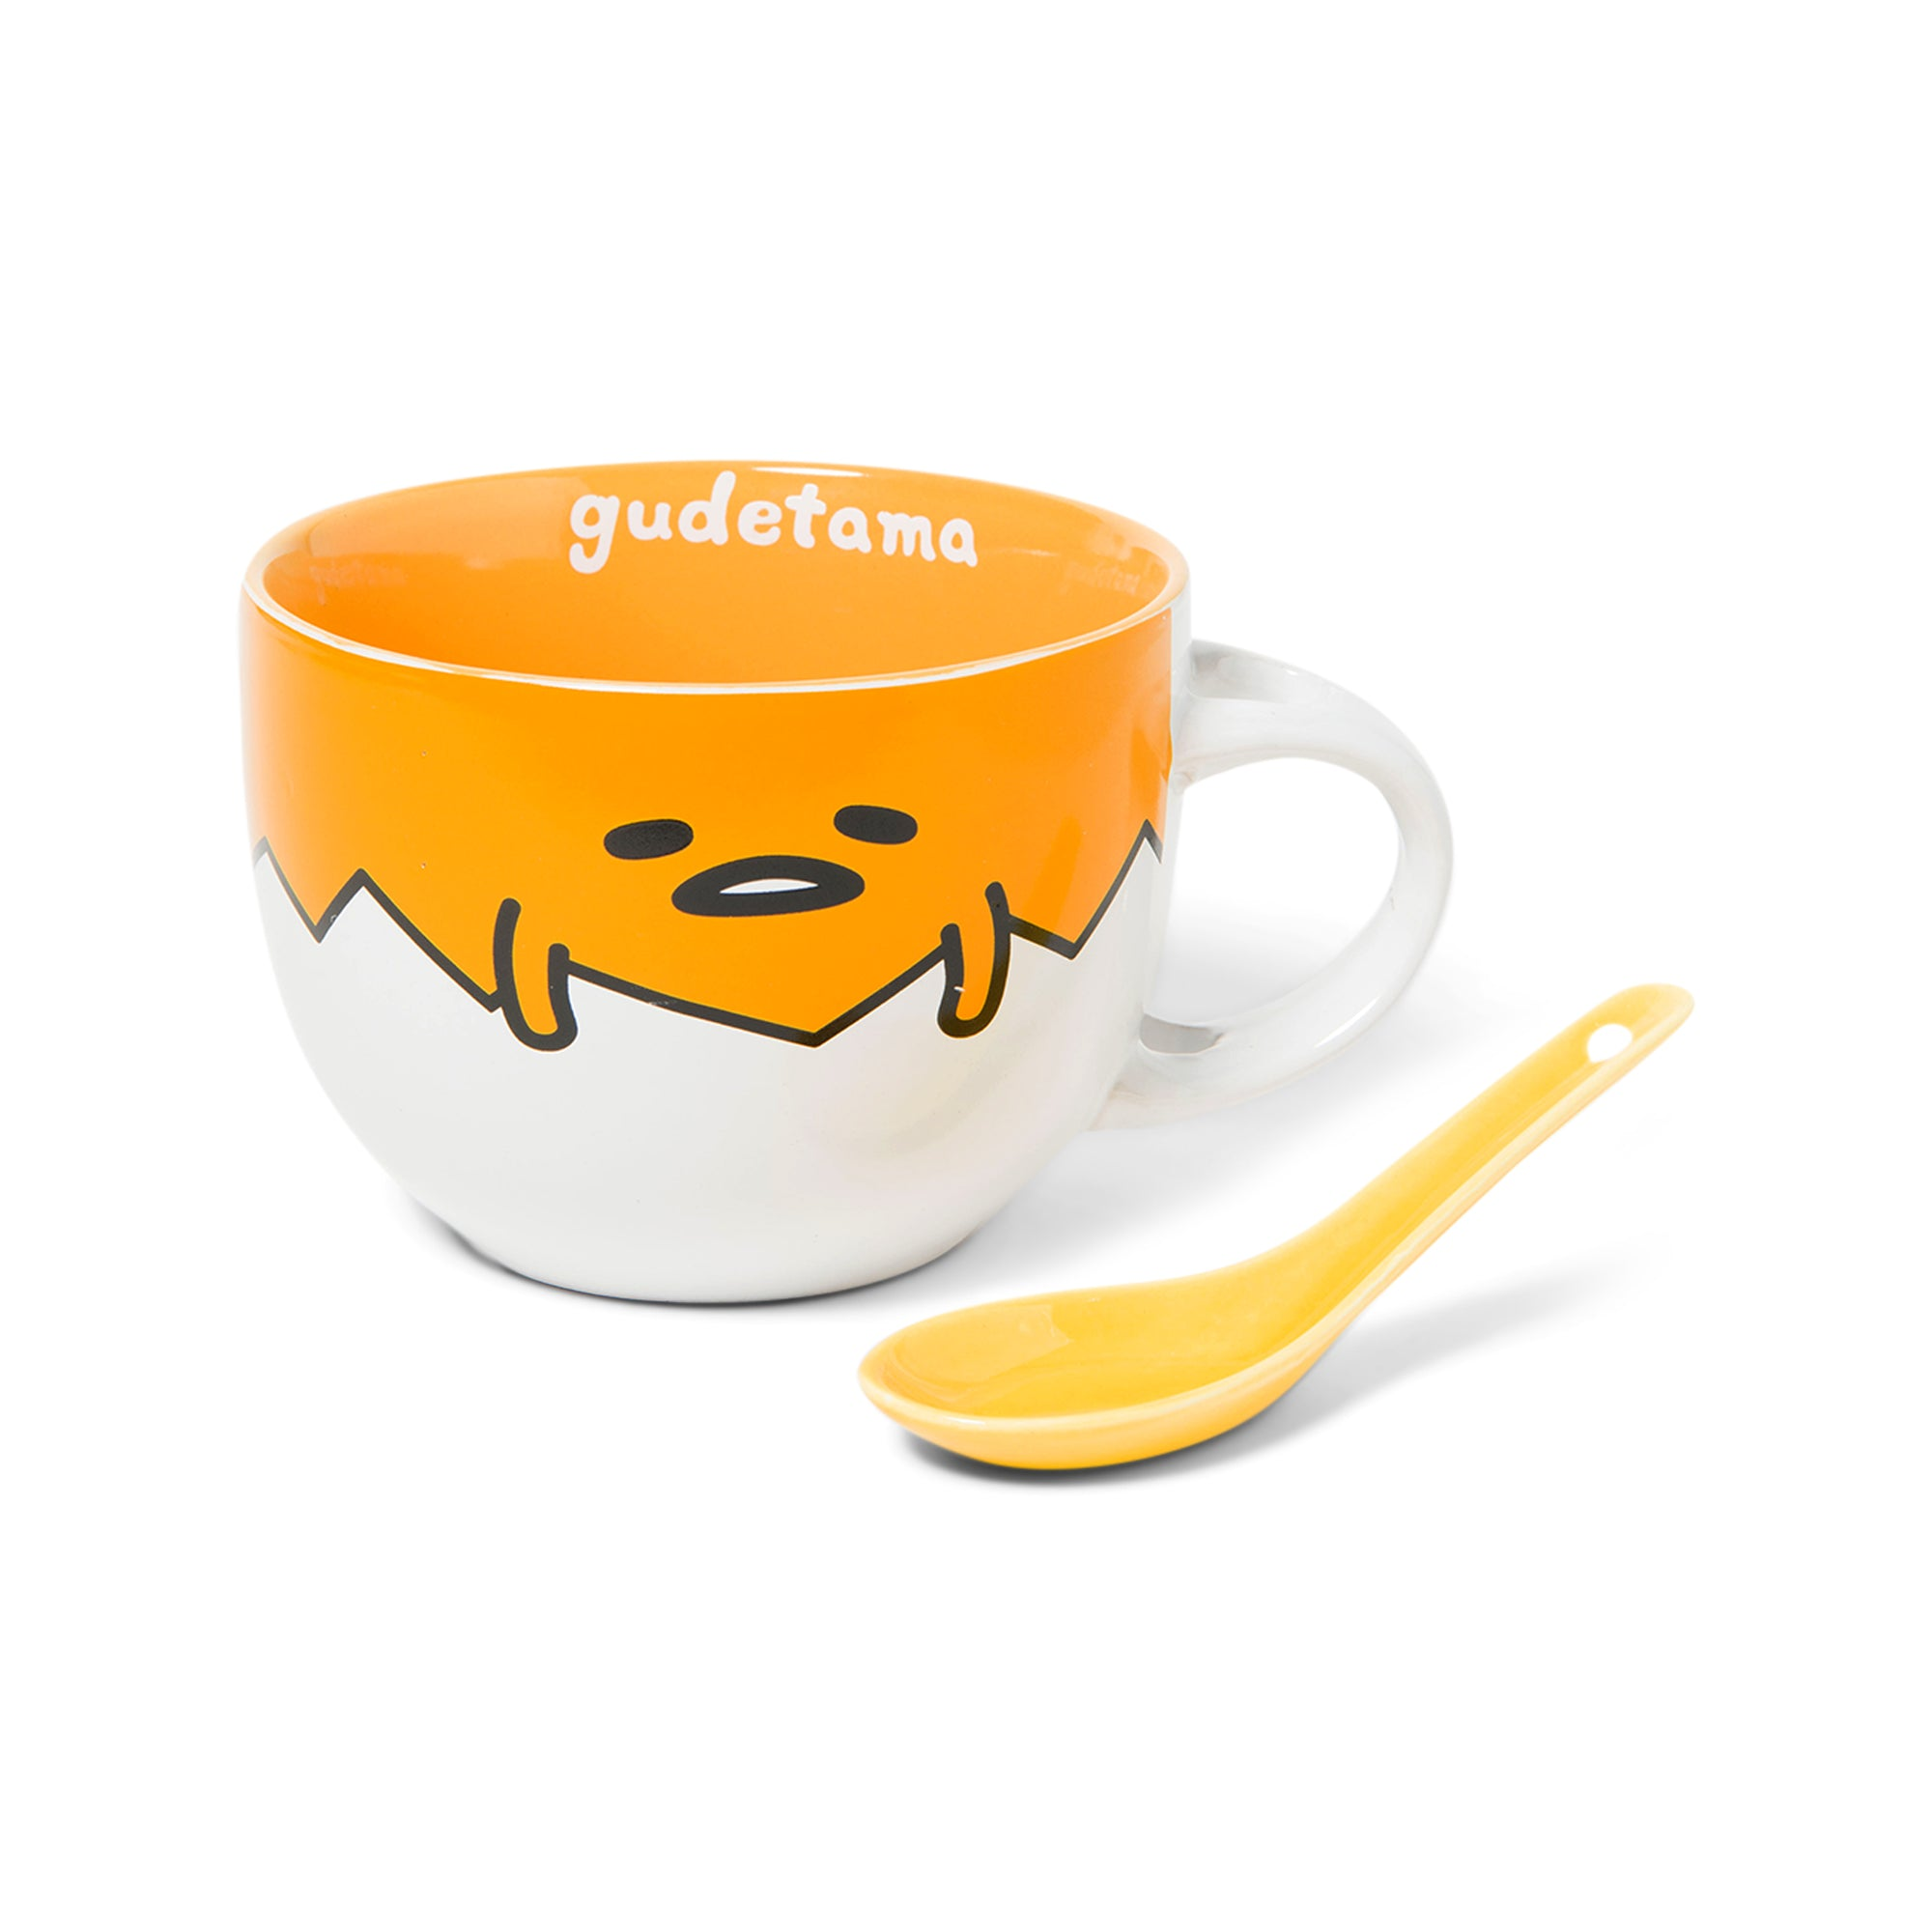 Gudetama Ceramic Soup Mug & Spoon